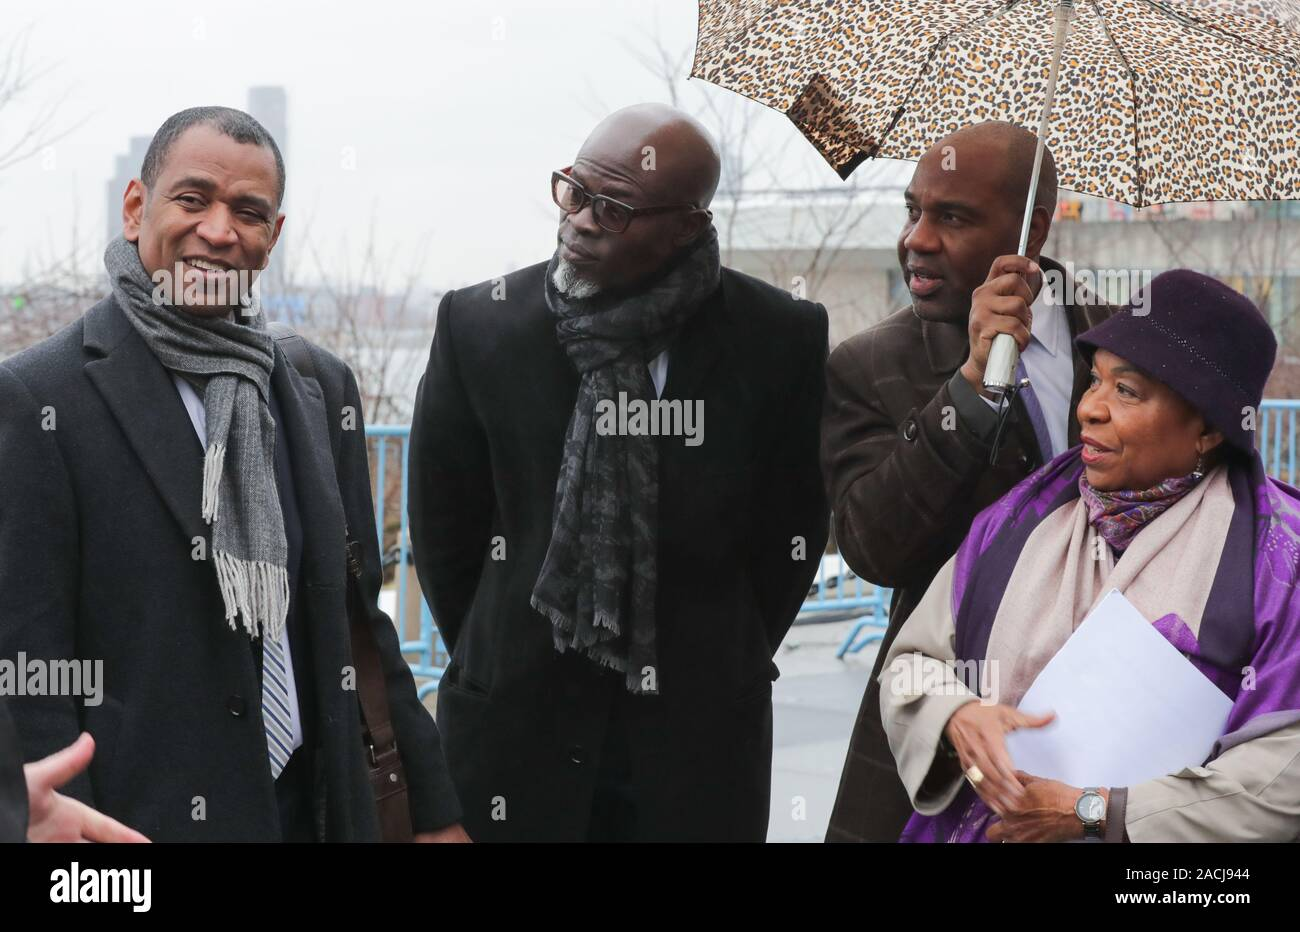 New York, NY, USA. 2nd Dec, 2019. United Nations, New York, USA, December 02, 2019 - Members of the United States Congressional Black Caucus visit the Ark of Return at UN Headquarters. With them were Djimon Hounsou, Actor and Producer, and Rodney Leon, Haitian-American architect and designer of the Ark of Return today at the UN Headquarters in New York.Photo: Luiz Rampelotto/EuropaNewswire.PHOTO CREDIT MANDATORY. Credit: Luiz Rampelotto/ZUMA Wire/Alamy Live News Stock Photo